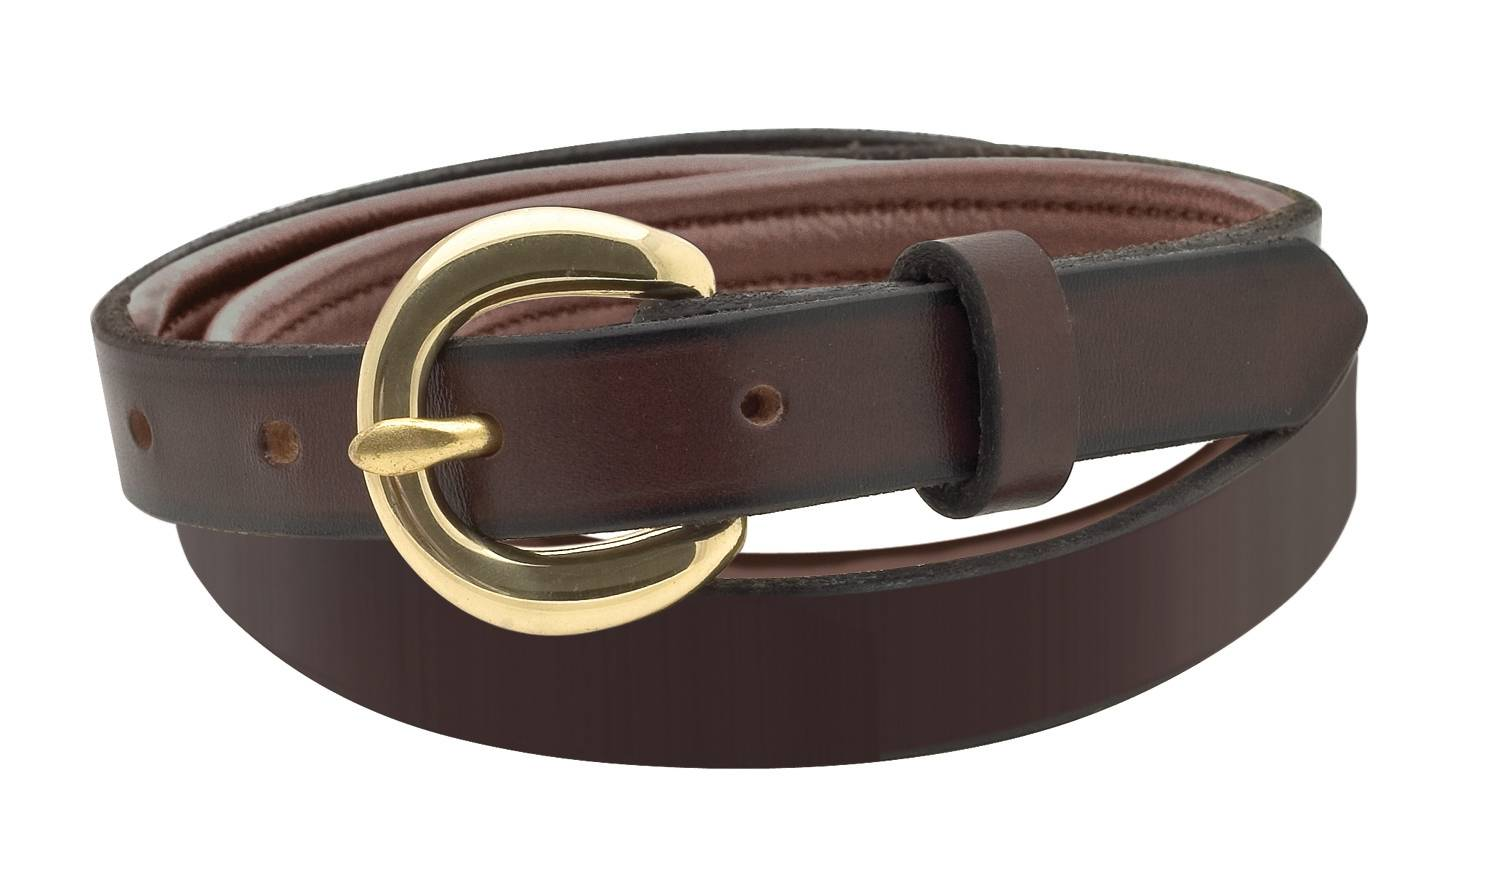 Perris Padded Leather Belt - Ladies